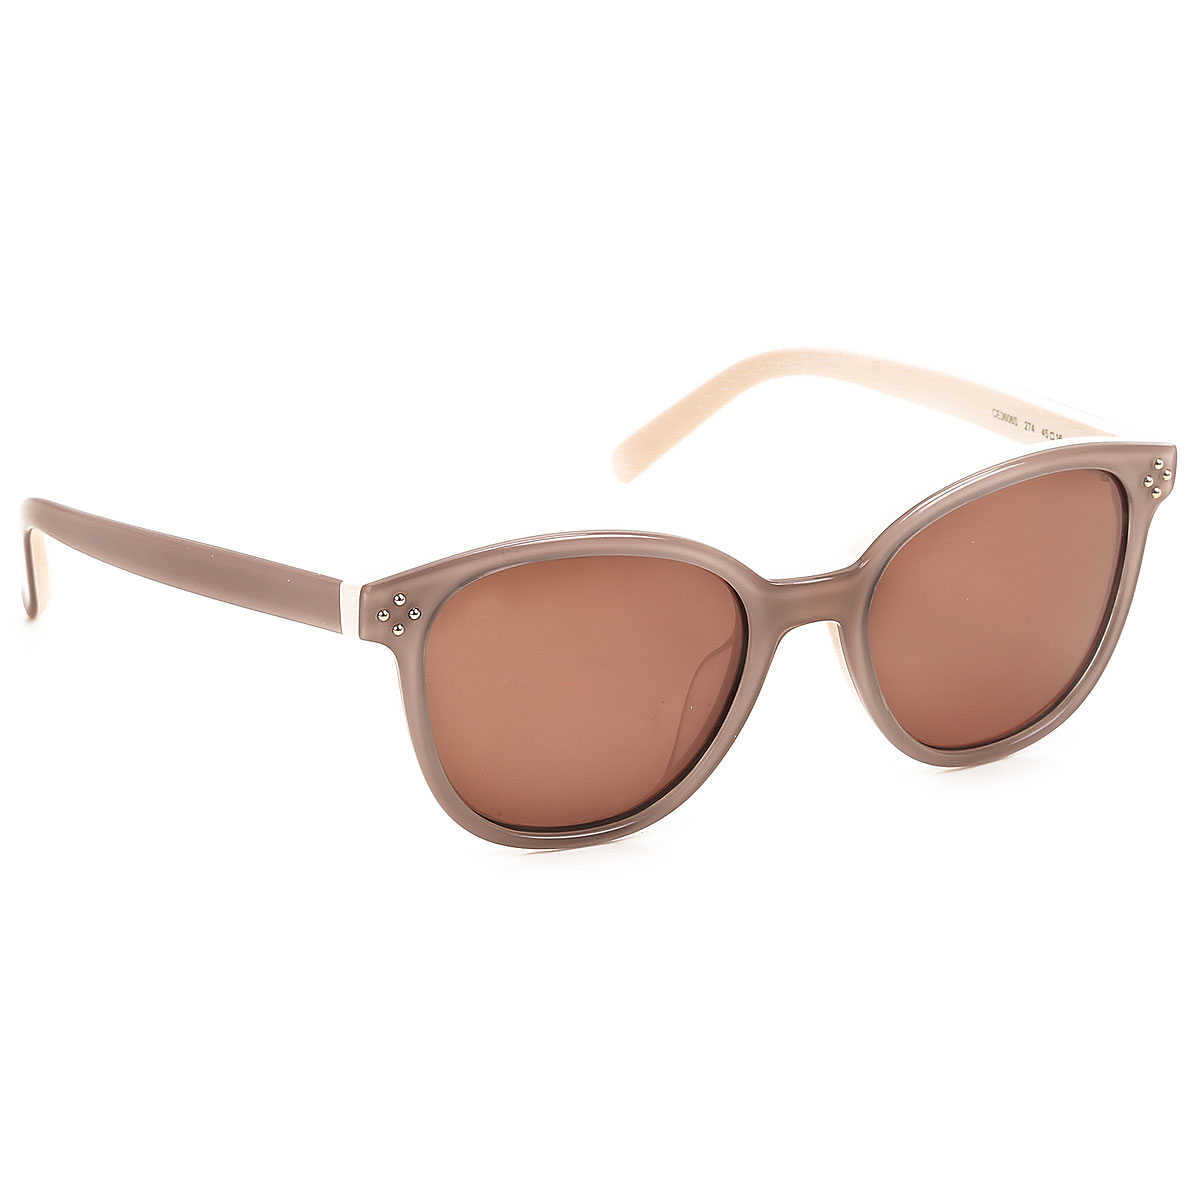 Chloe Kids Sunglasses for Girls On Sale Mauve - GOOFASH - Womens SUNGLASSES